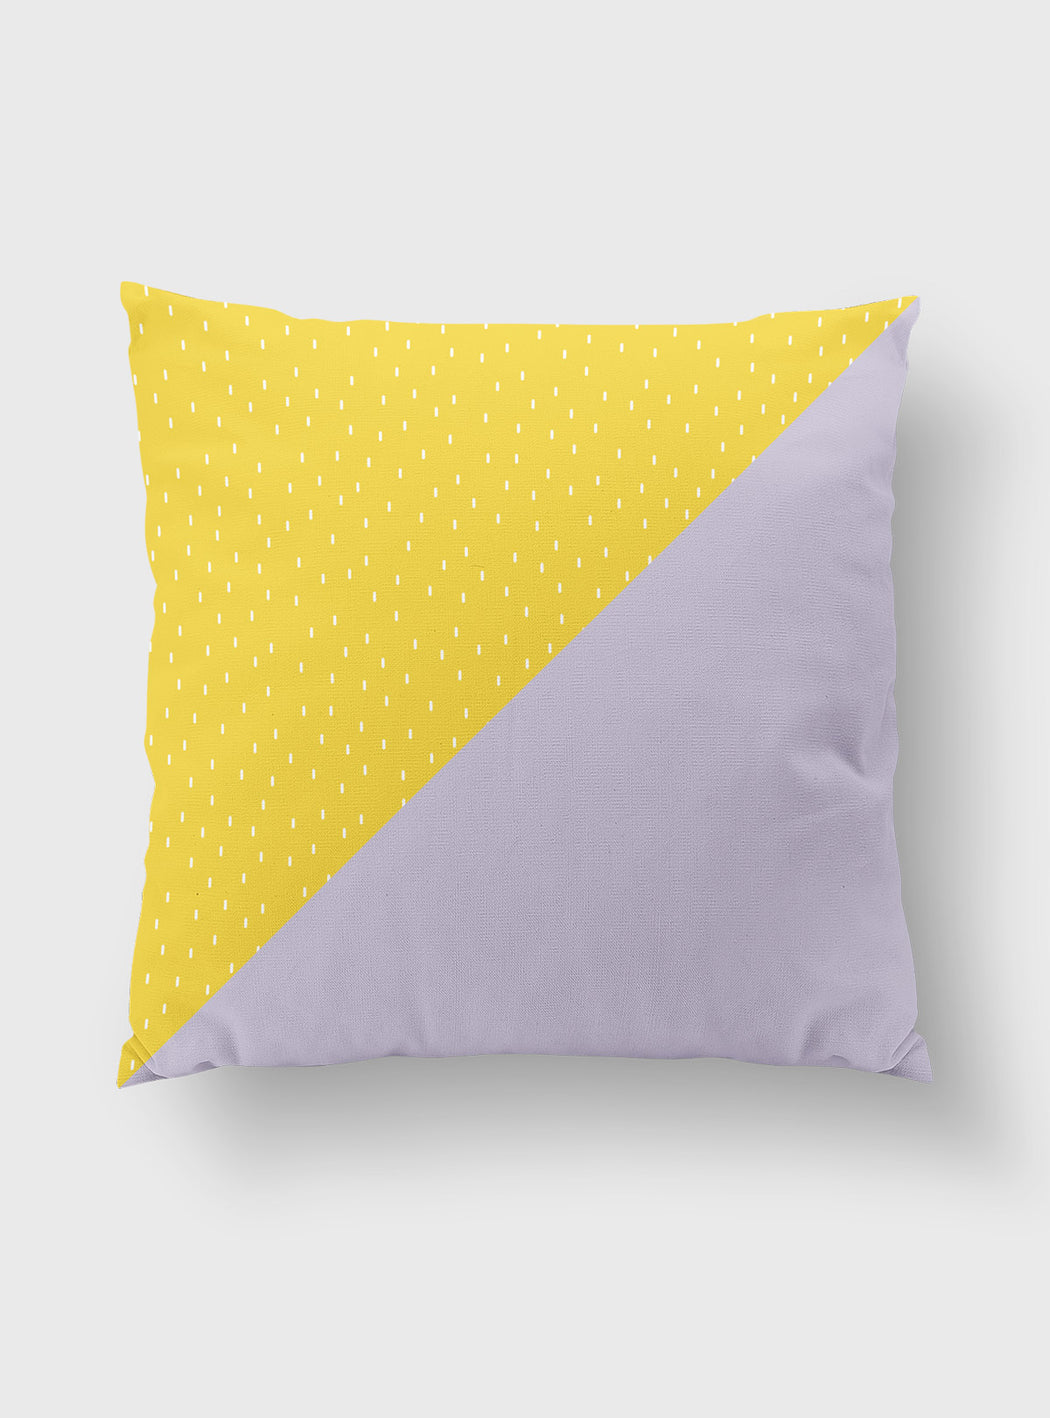 Bi decorative Pillowcase 50 x 50 cms